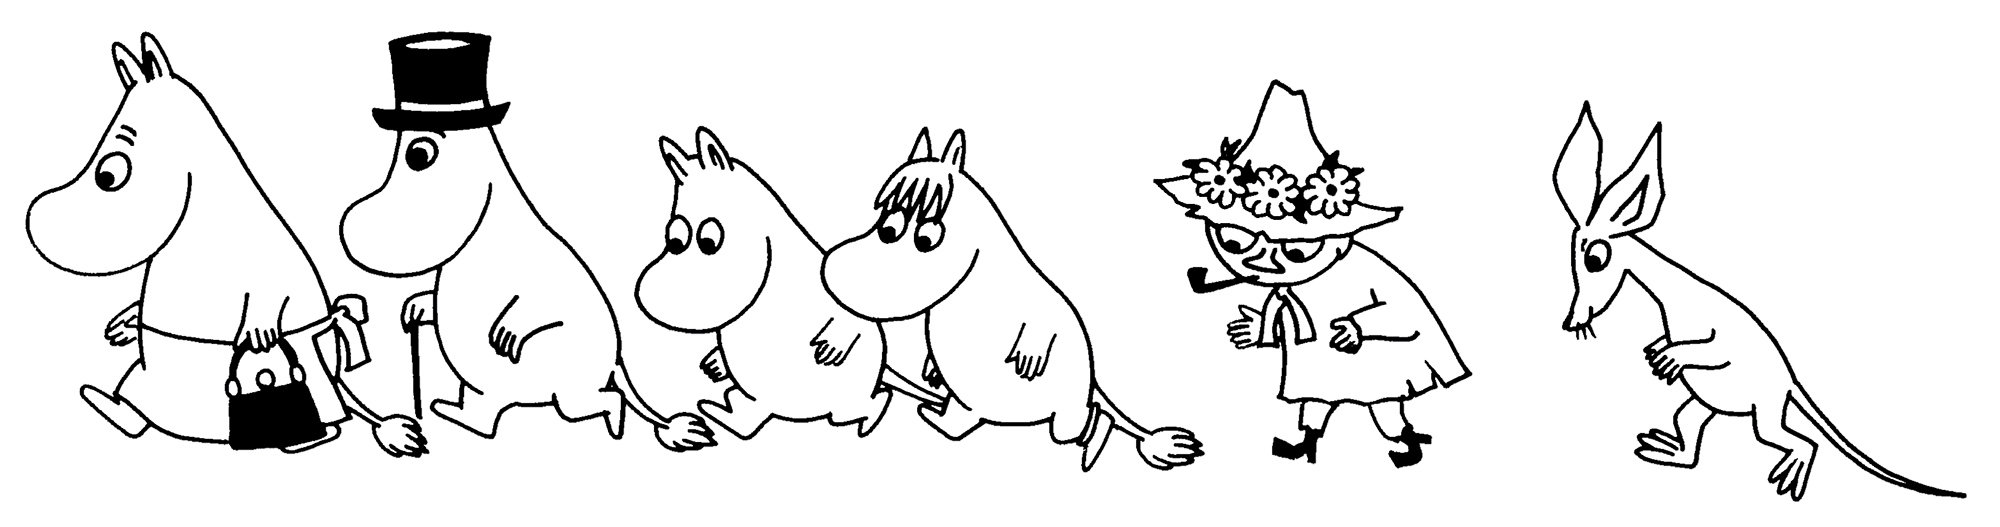 Moomin family by Moomin Characters